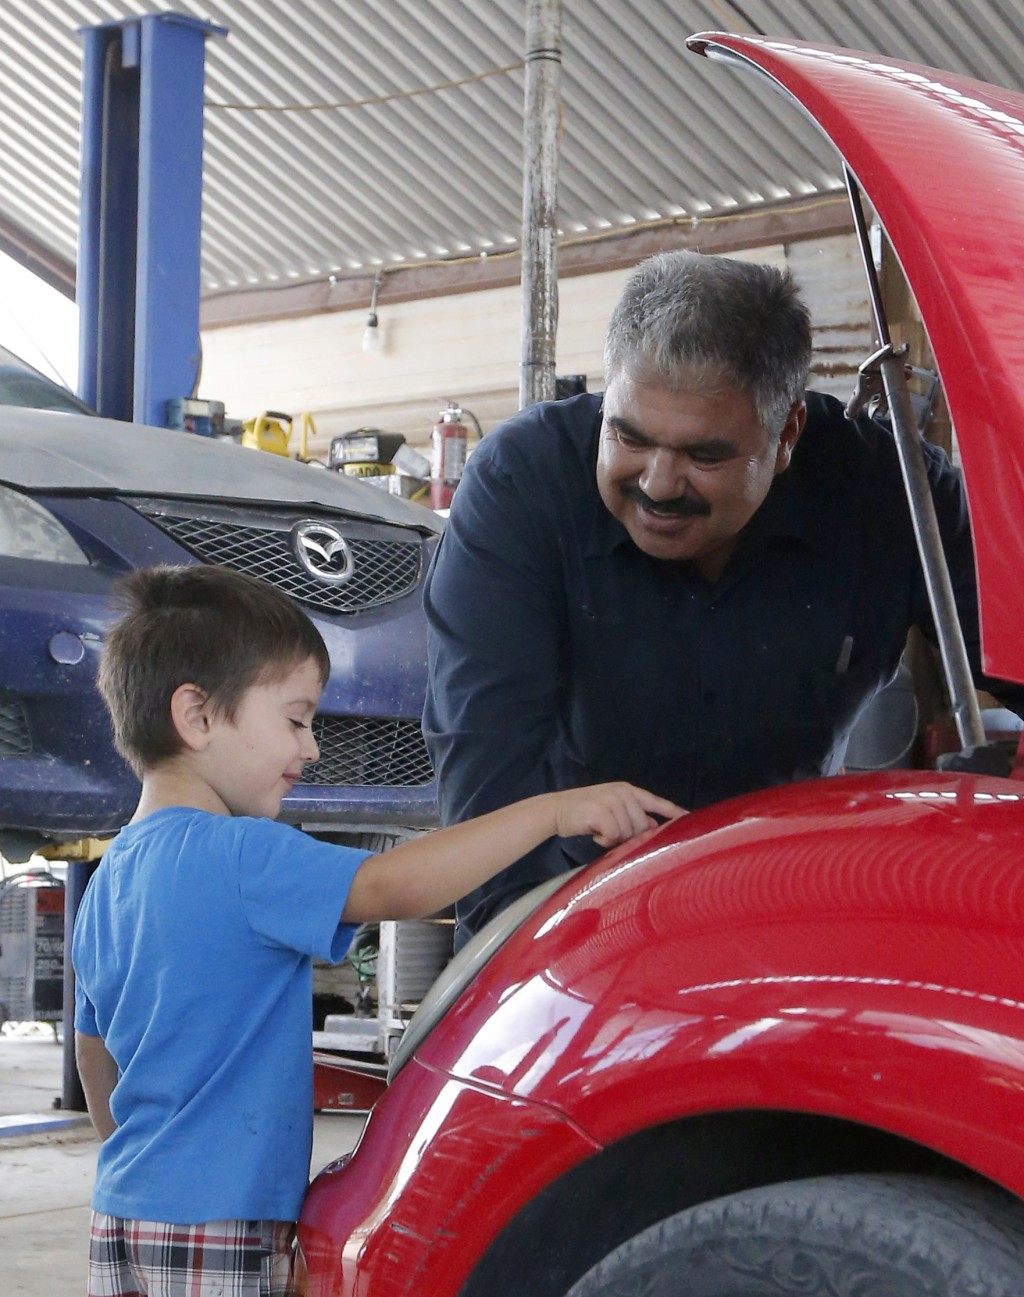 Ruben Moyoroqui, right, talks with his son, Rafael, in his auto repair shop in Tucson, Ariz., on Tuesday, Sept. 4, 2018. Moyoroqui, who came to the U....